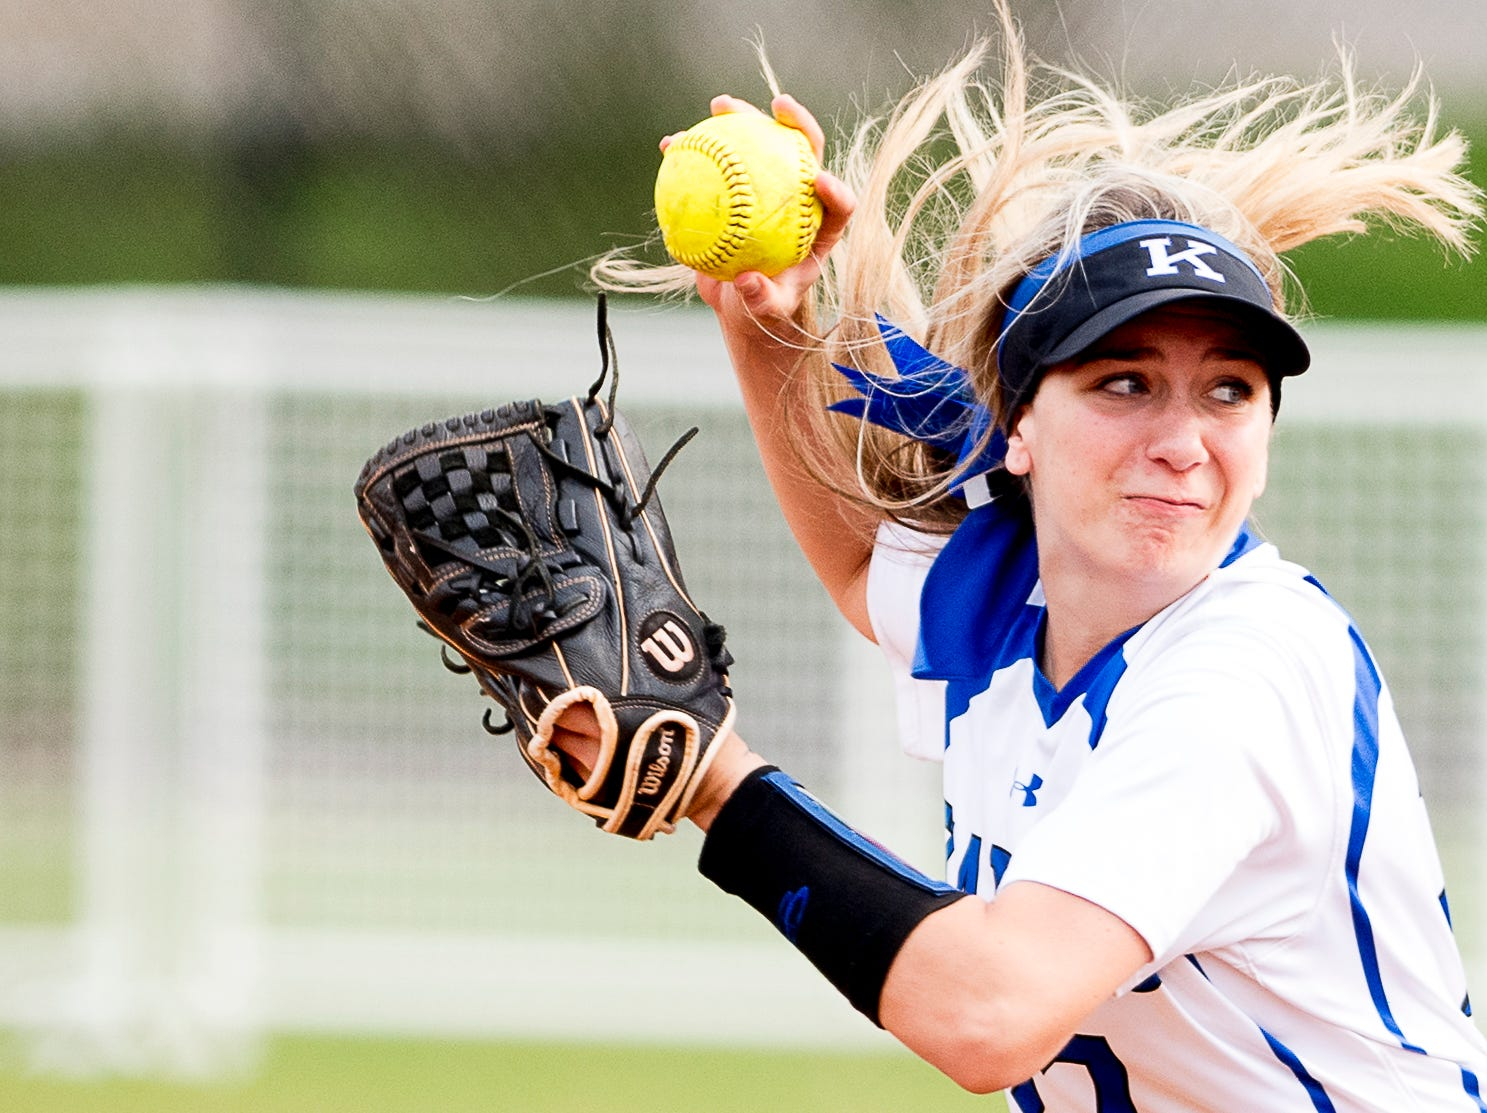 Karns' Jennifer Bezarek (27) throws the ball to first during a softball game between Catholic and Karns at Caswell Park in Knoxville, Tennessee on Friday, April 12, 2019.